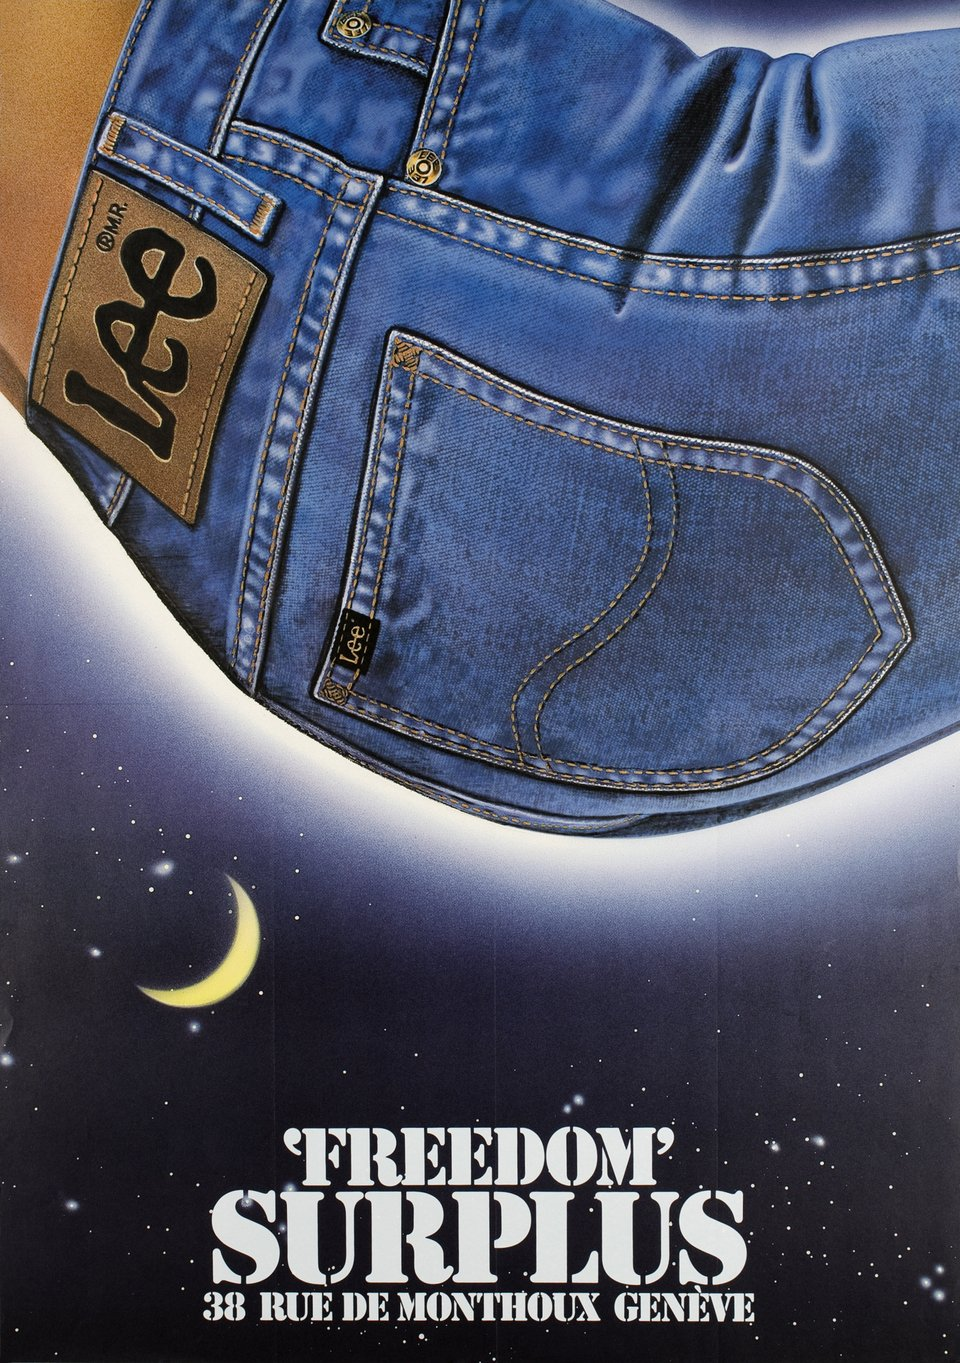 Freedom Surplus, Genève – Affiche ancienne –  ANONYME – 1980